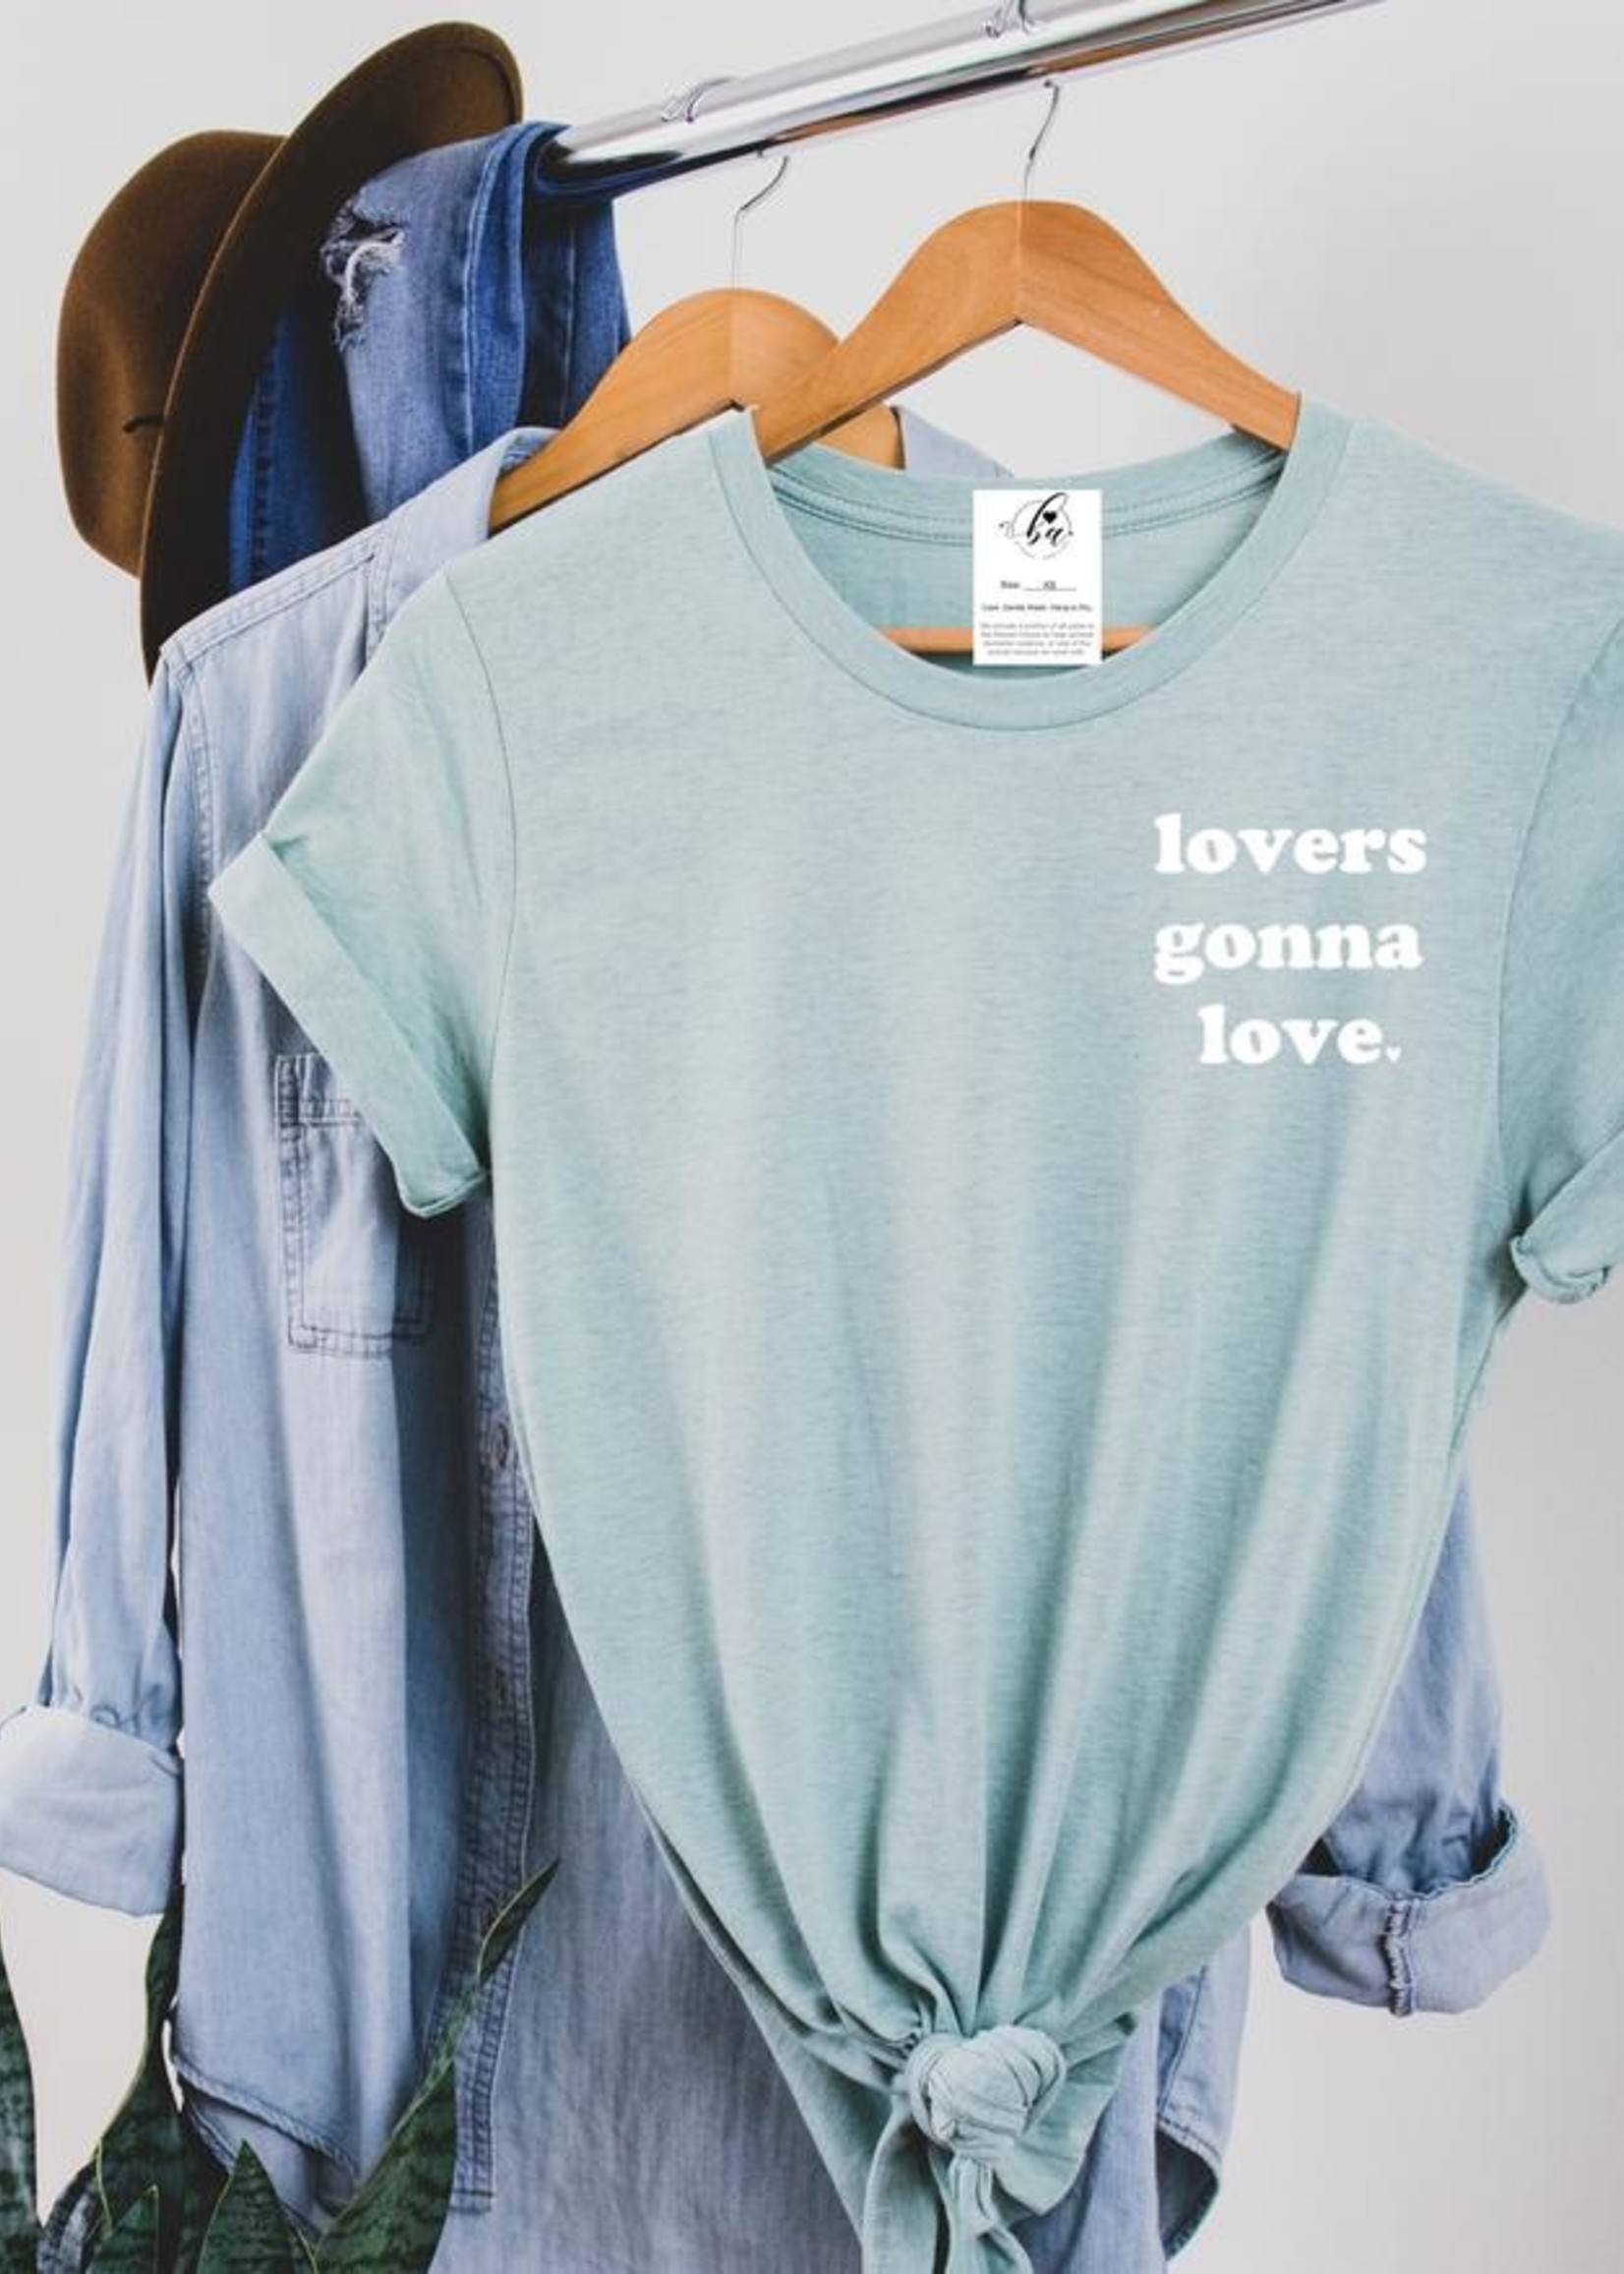 Blonde Ambition Lovers Gonna Love T-Shirt